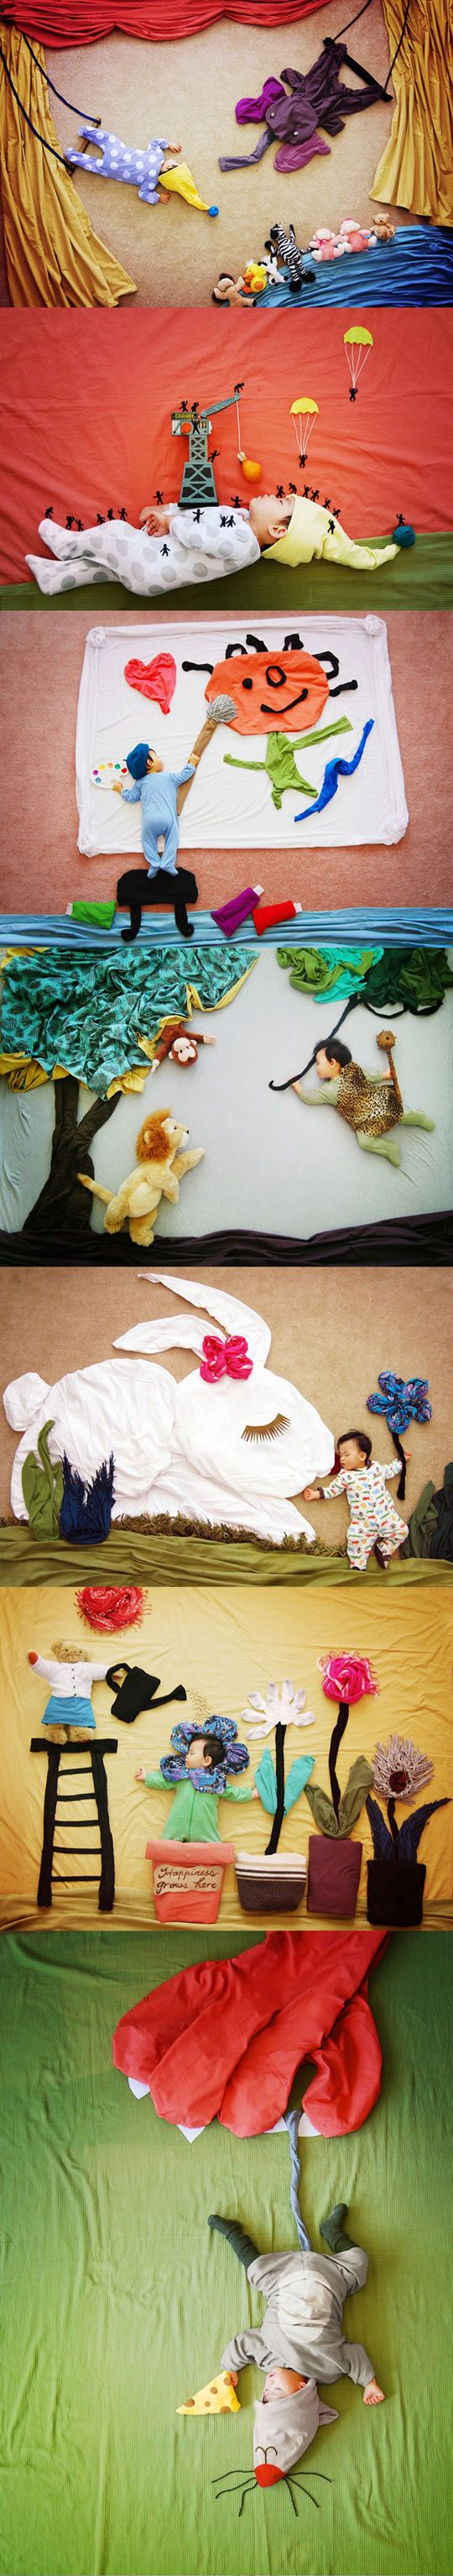 funny-baby-sleep-art-photography-session